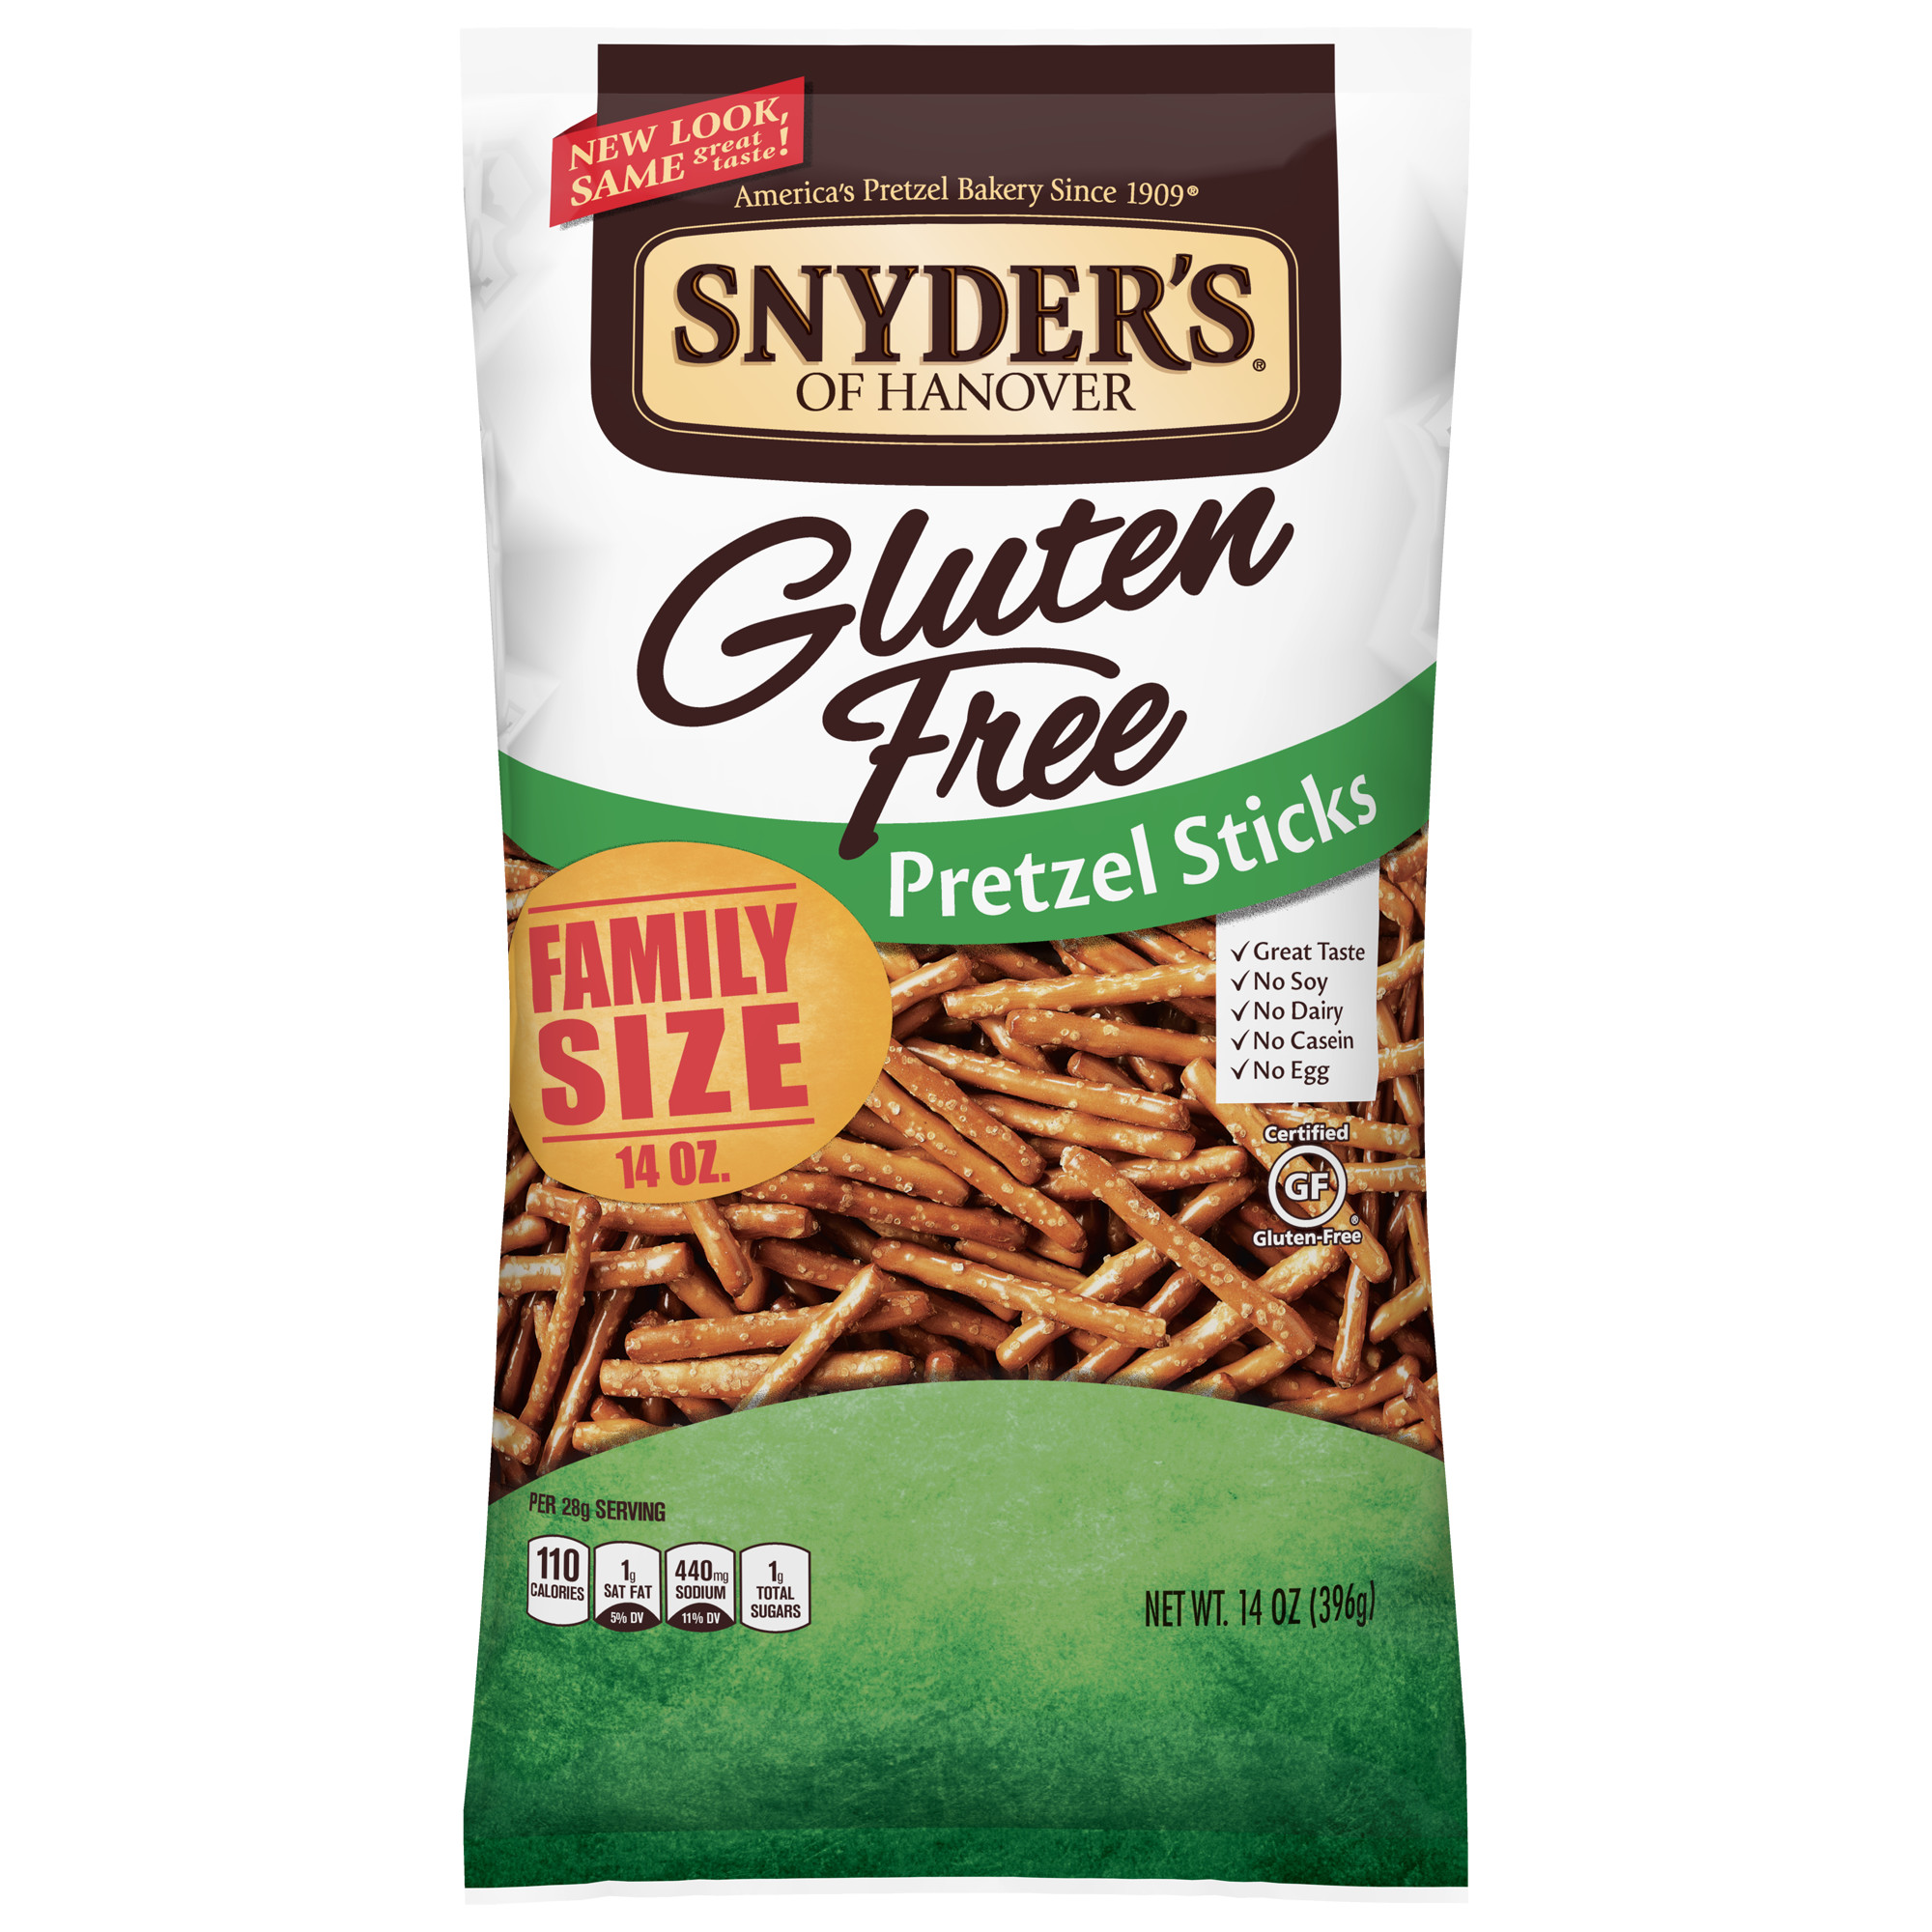 Snyder's of Hanover Gluten Free Pretzel Sticks Family Size, 14.0 Oz